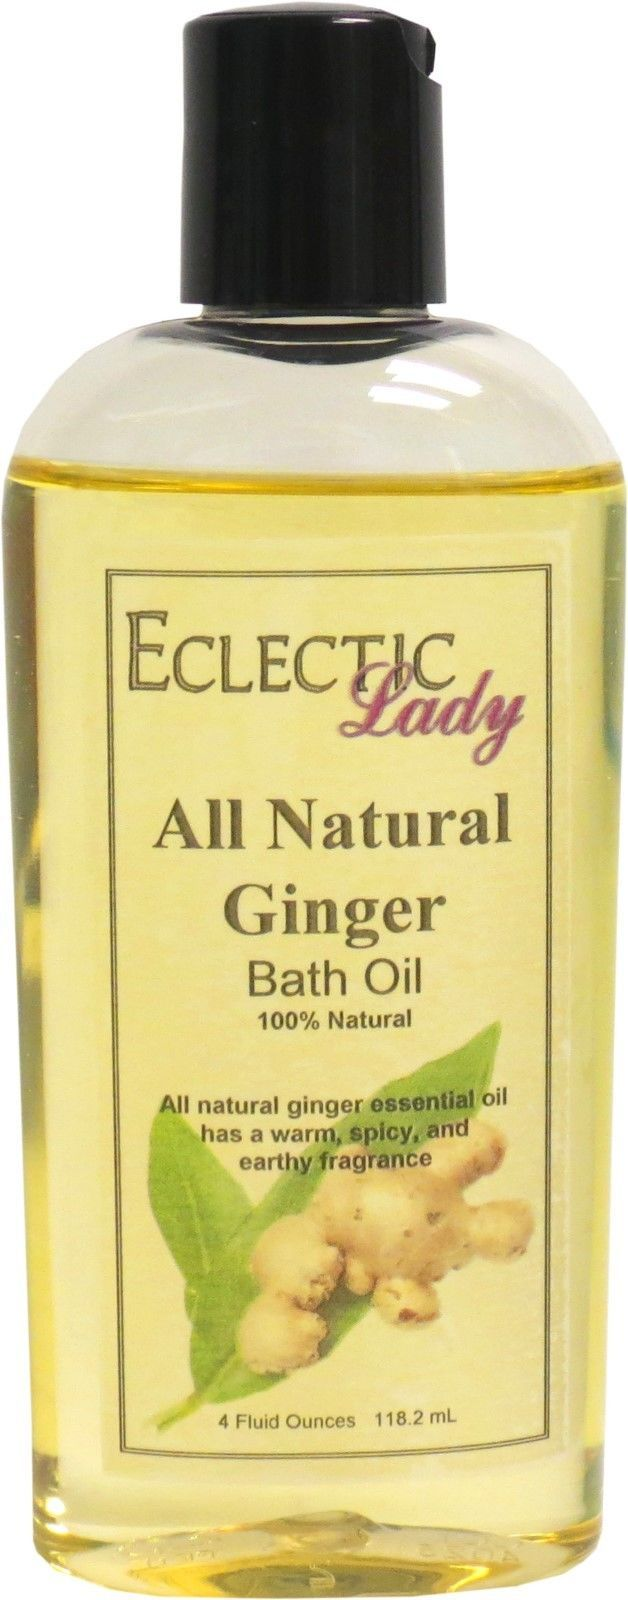 Ginger All Natural Bath Oil